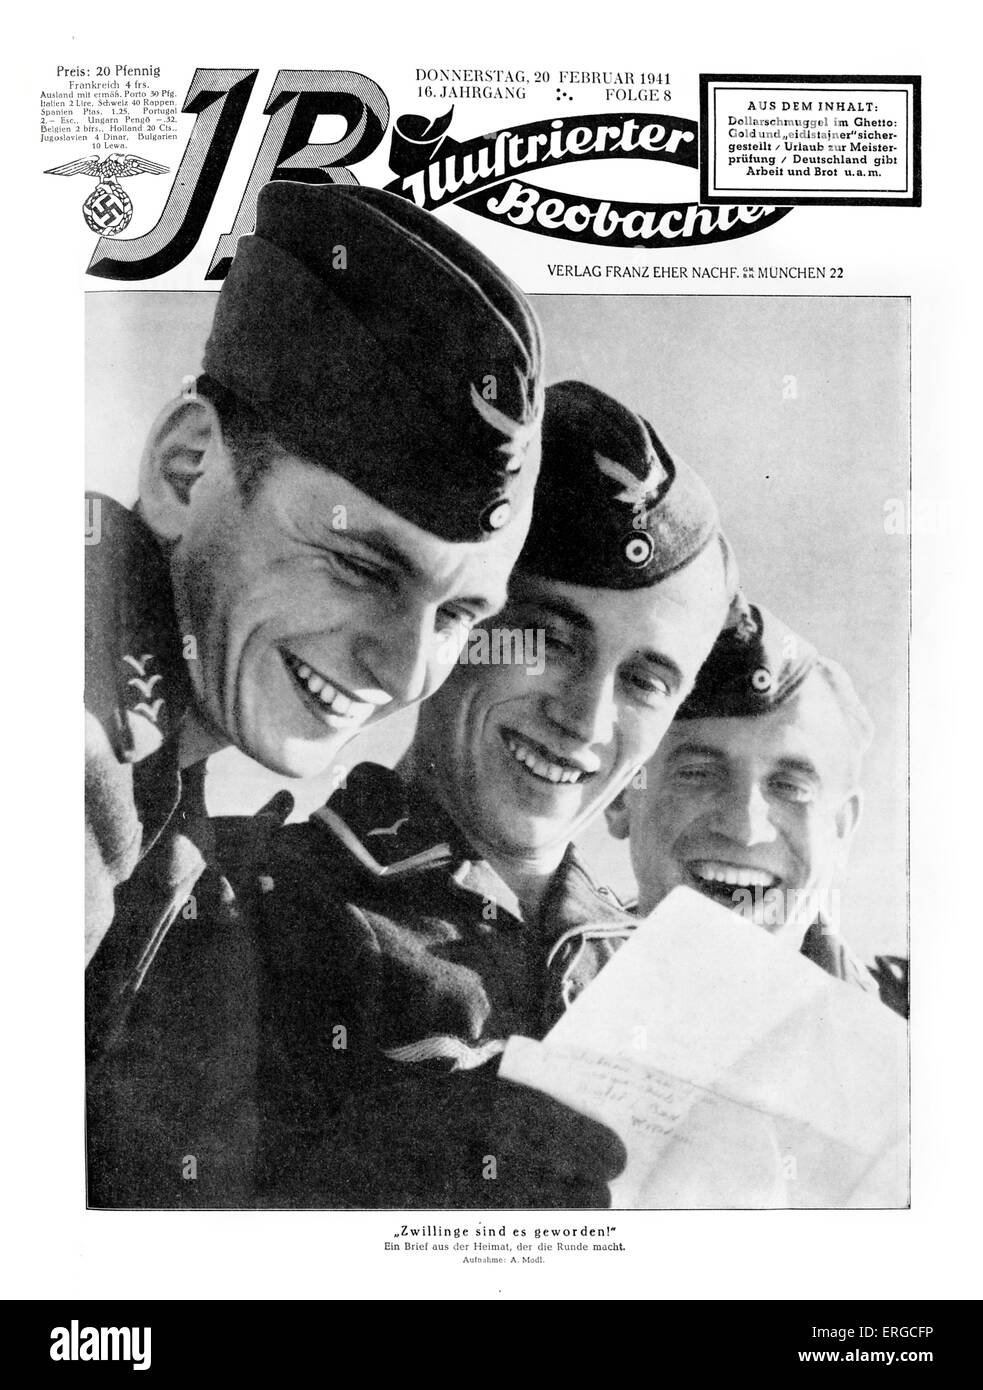 Cover of the 'Illustrierter Beobachter' (Illustrated Observer), Thursday 20 February 1941, Issue 8. Three men from Stock Photo